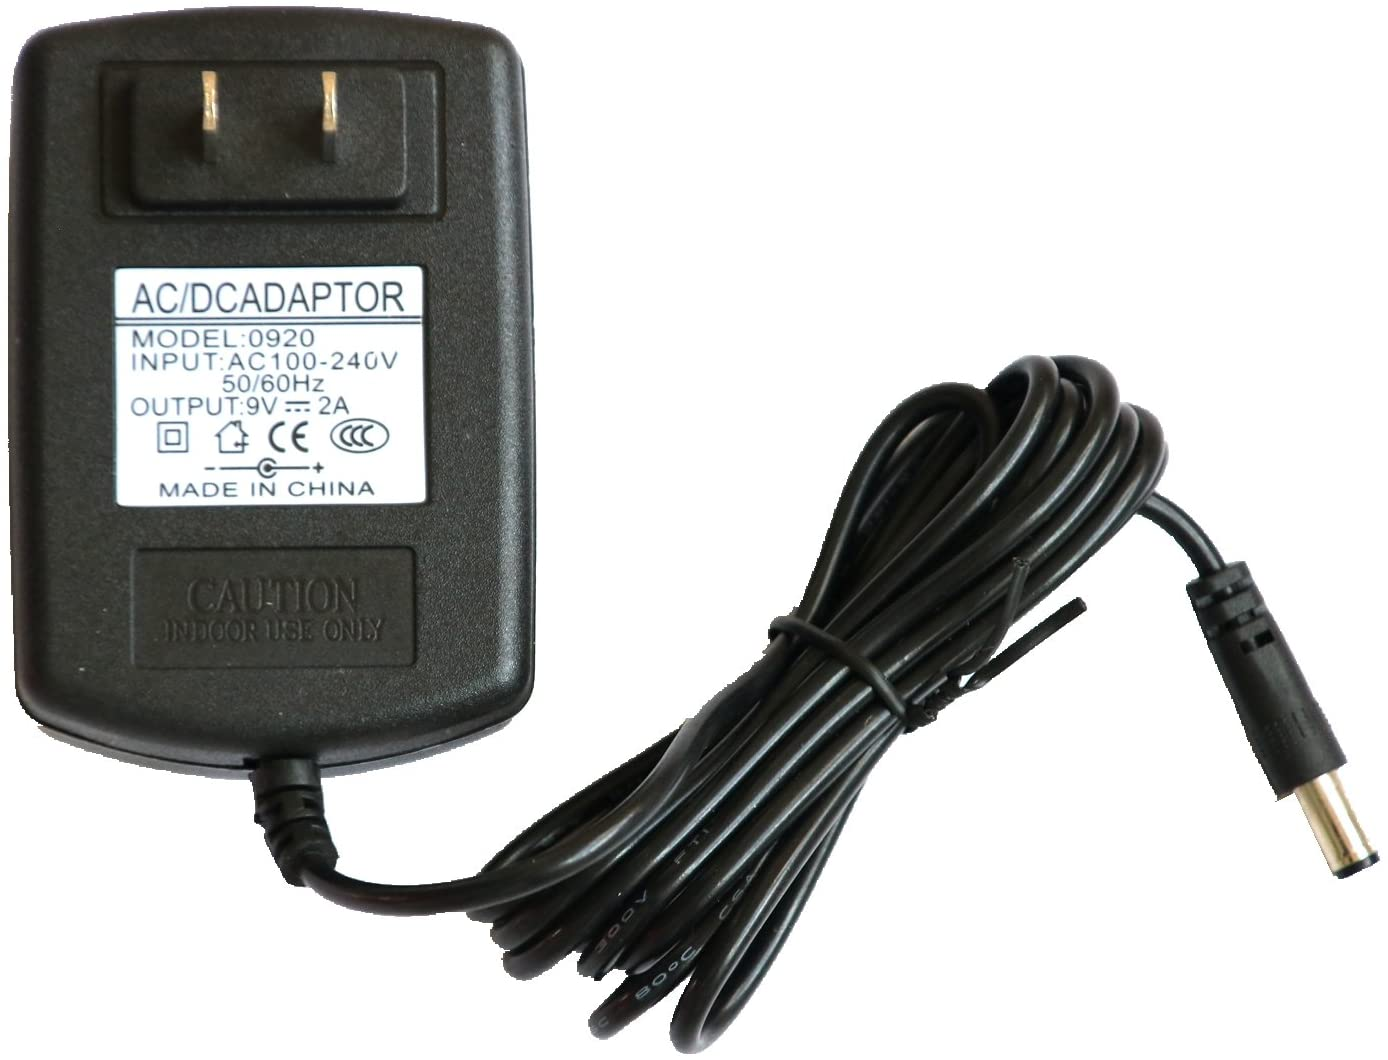 Nicer-S New 9V AC Adapter Power Charger for BOSS/Roland PSB-120 ACB-120 PSB-1U PSB1U; BOSS Roland GT-10 GT-10B BCB-60 VG-99 Multi-Effects Guitar, Bass Effect Pedal Board Power Supply Cord PSU